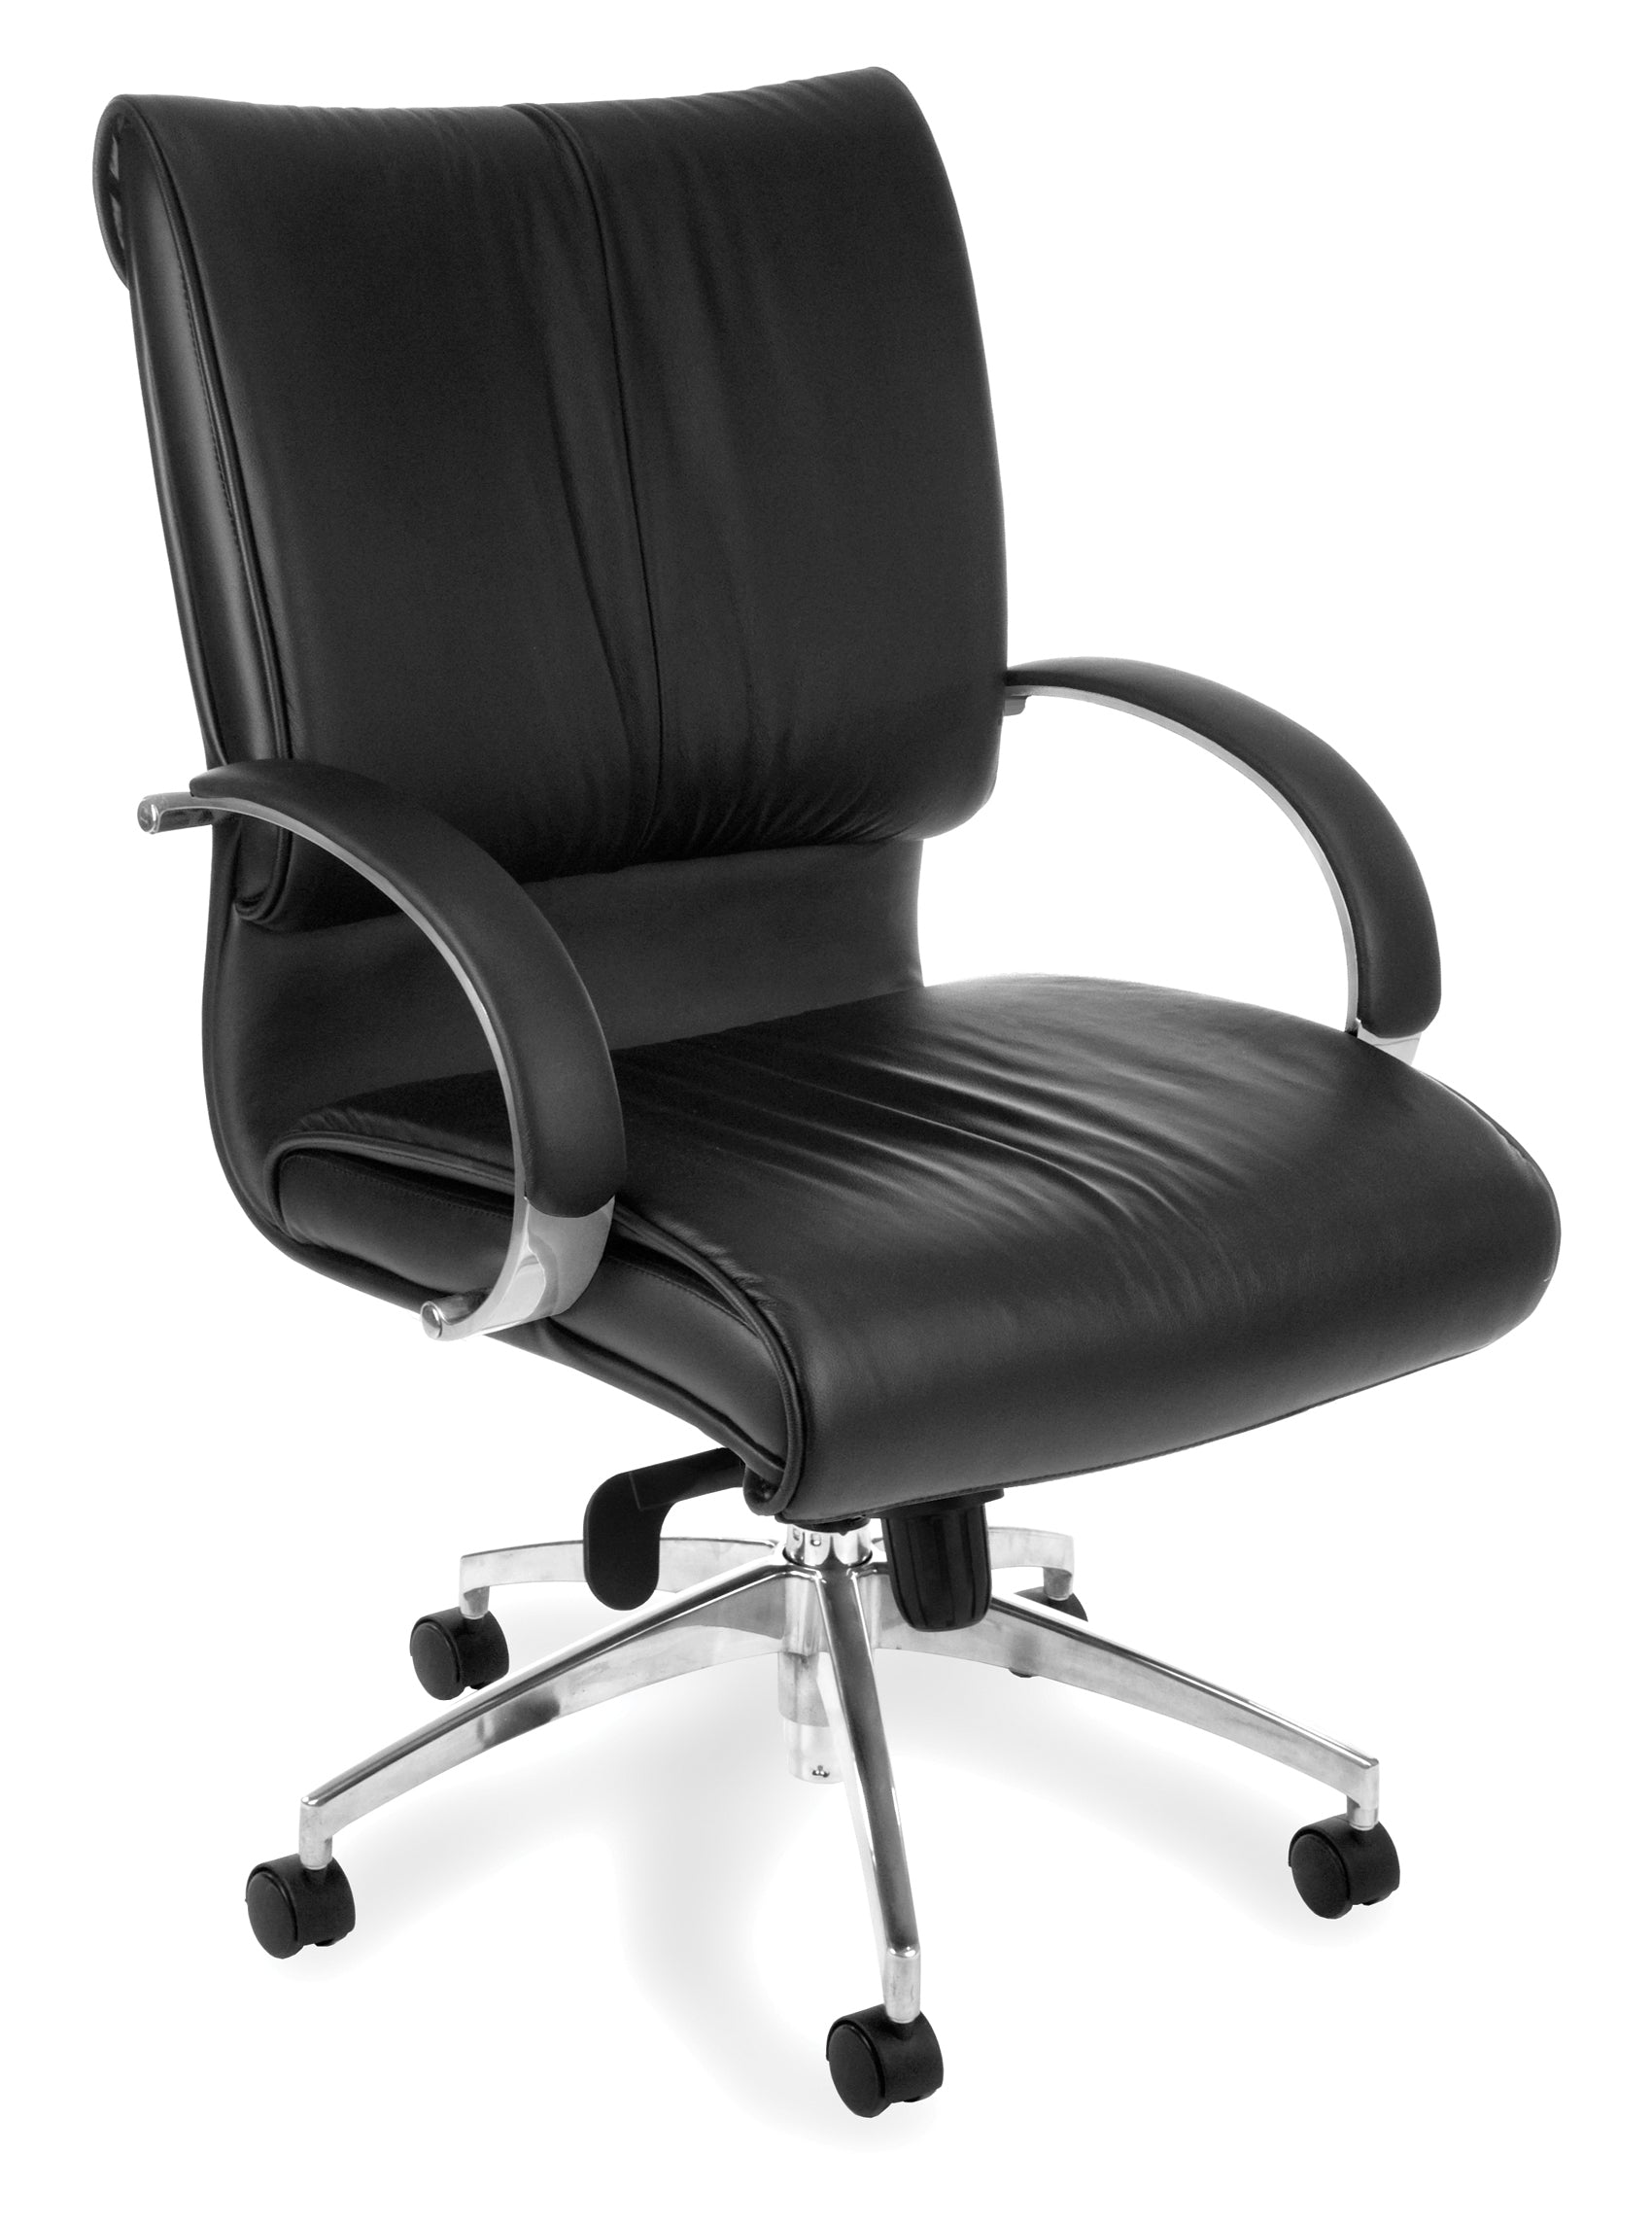 511 Sharp Series Leather Mid-Back Executive Chair with Knee Tilt